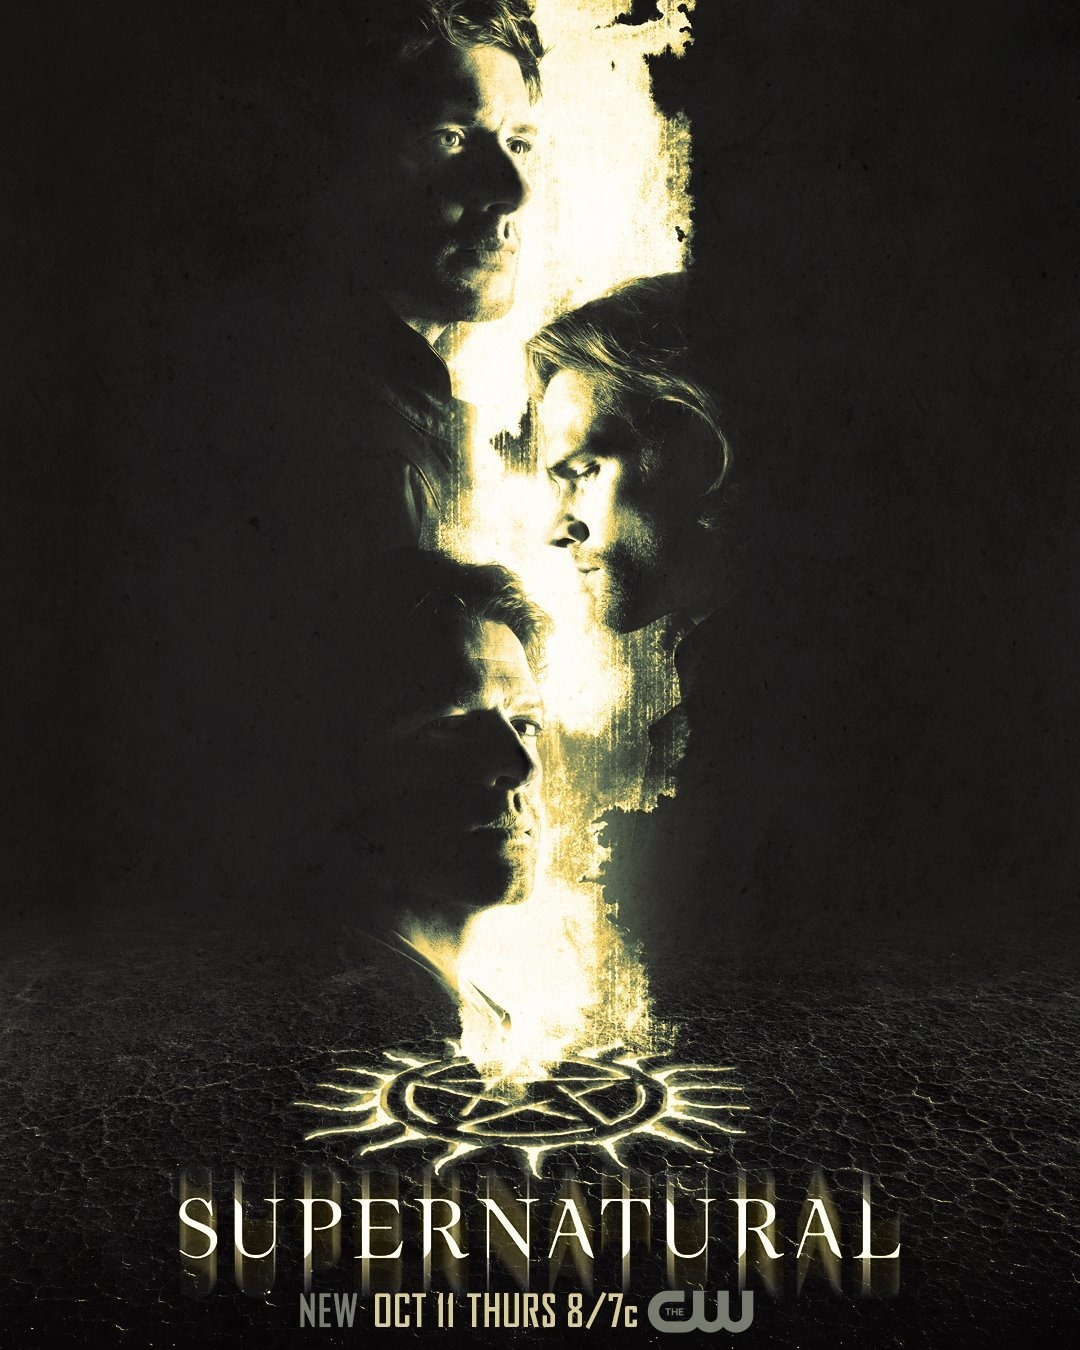 Supernatural (TV Series 2005– ) - IMDb